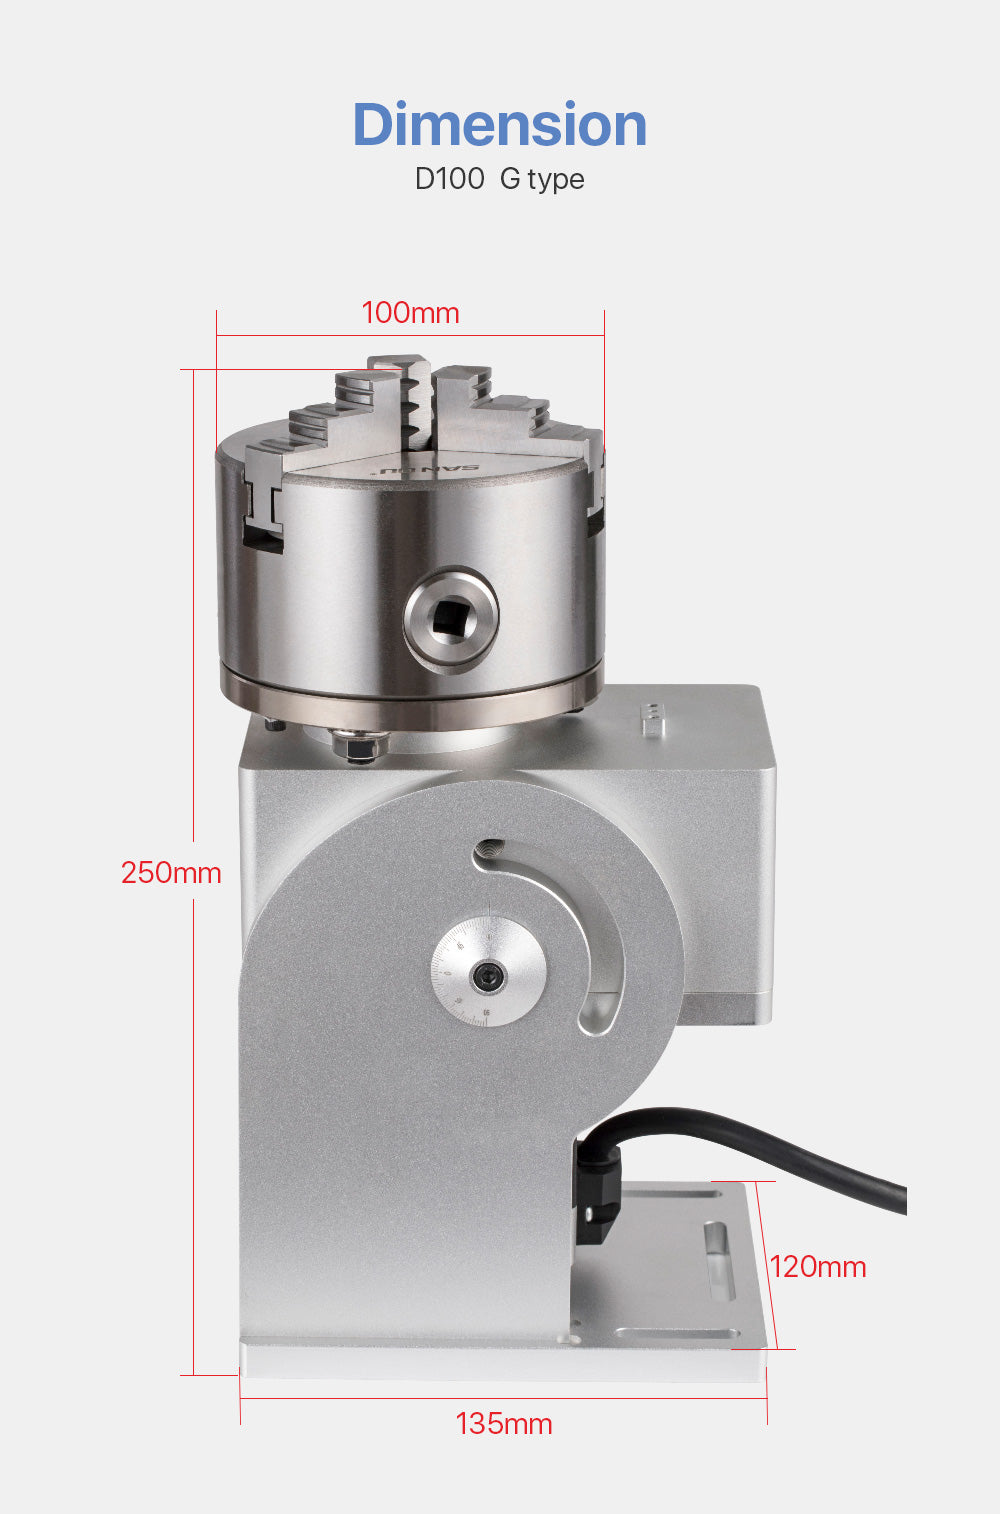 Rotary Attachment Diameter10mm Neam 34 Motor and Driver for Cuboid Objects Circular Marking